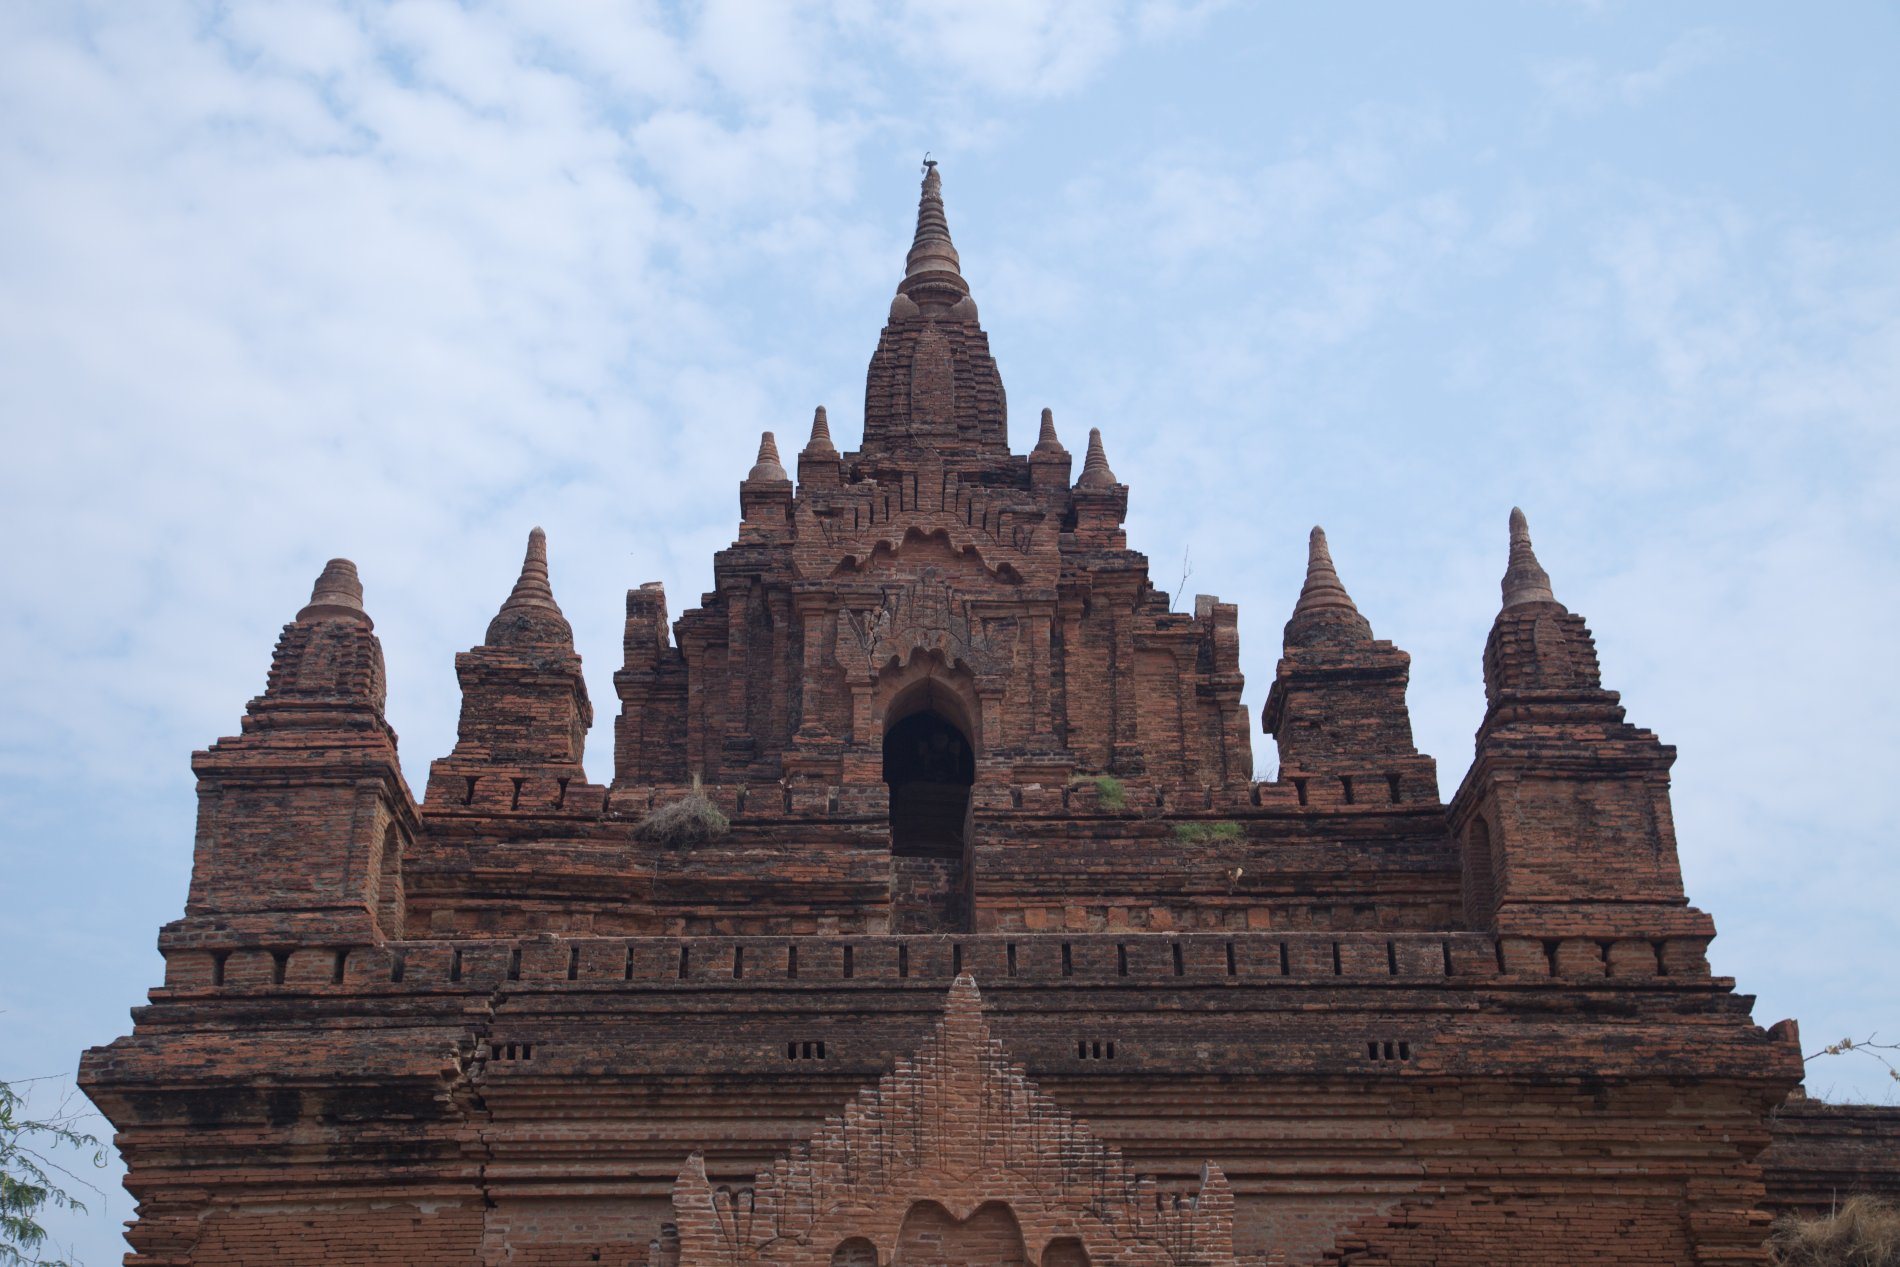 Bagan_257.jpg-commment